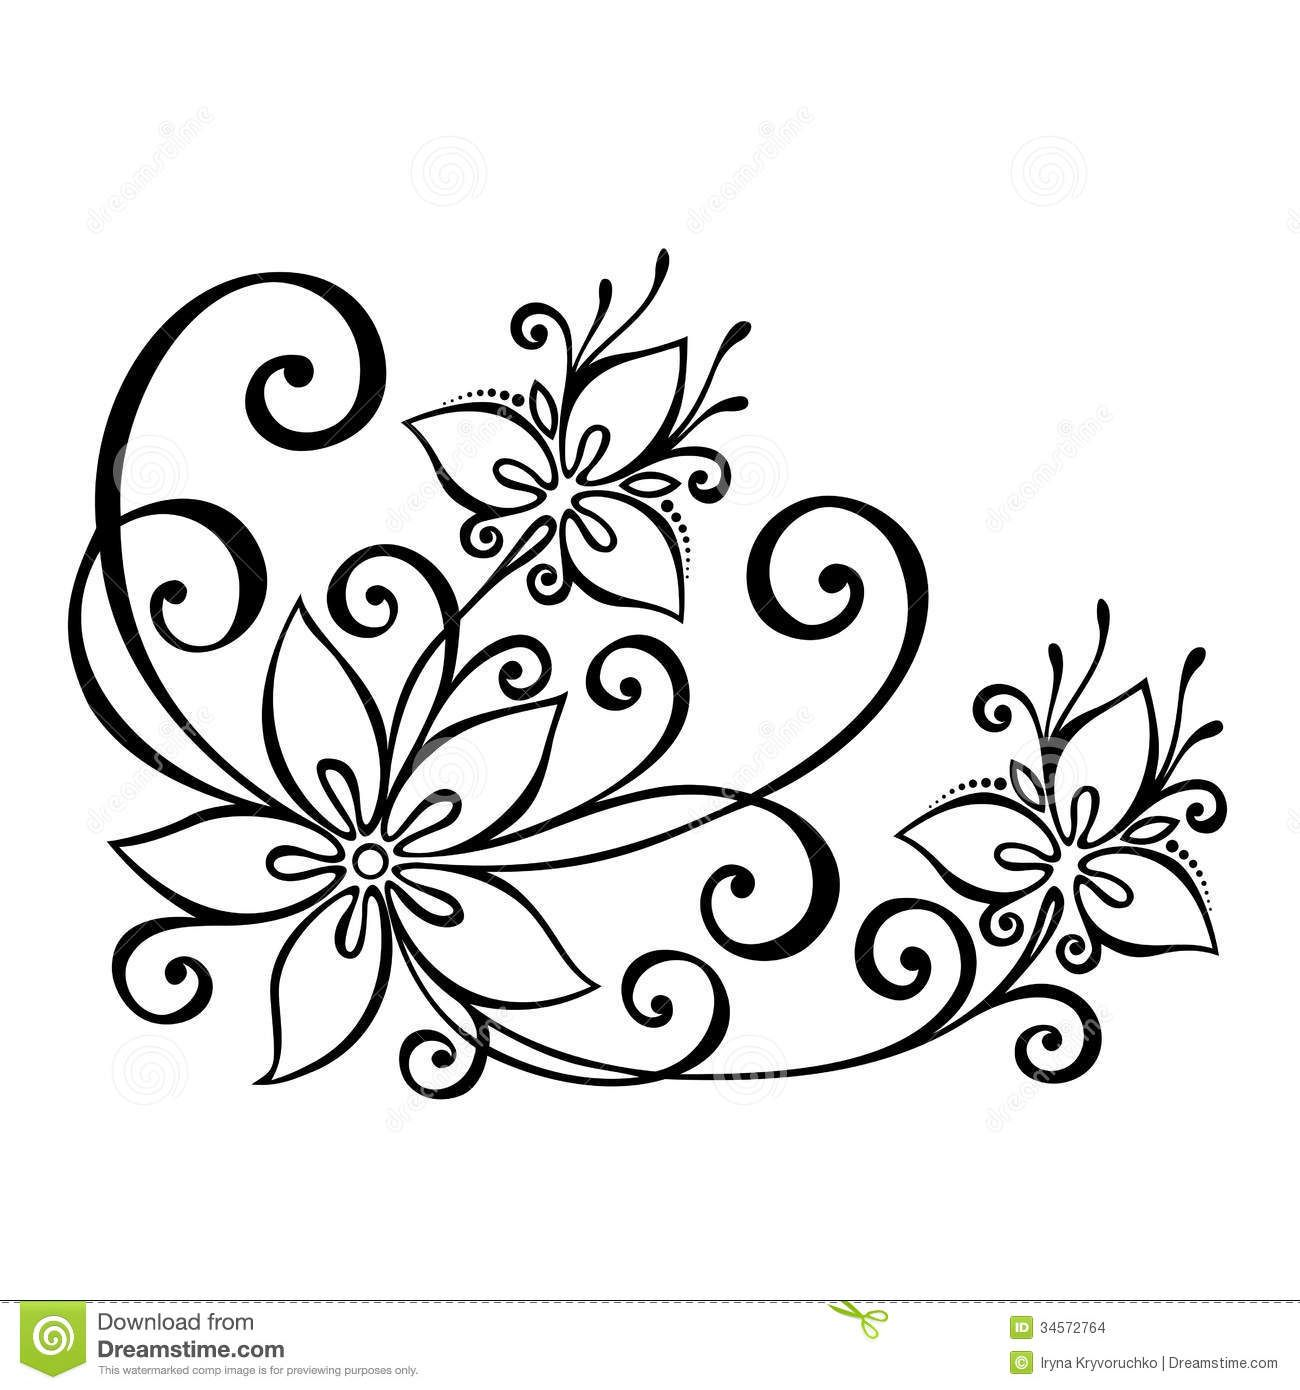 Decorative Flower Leaves Beautiful Vector Patterned Design 34572764